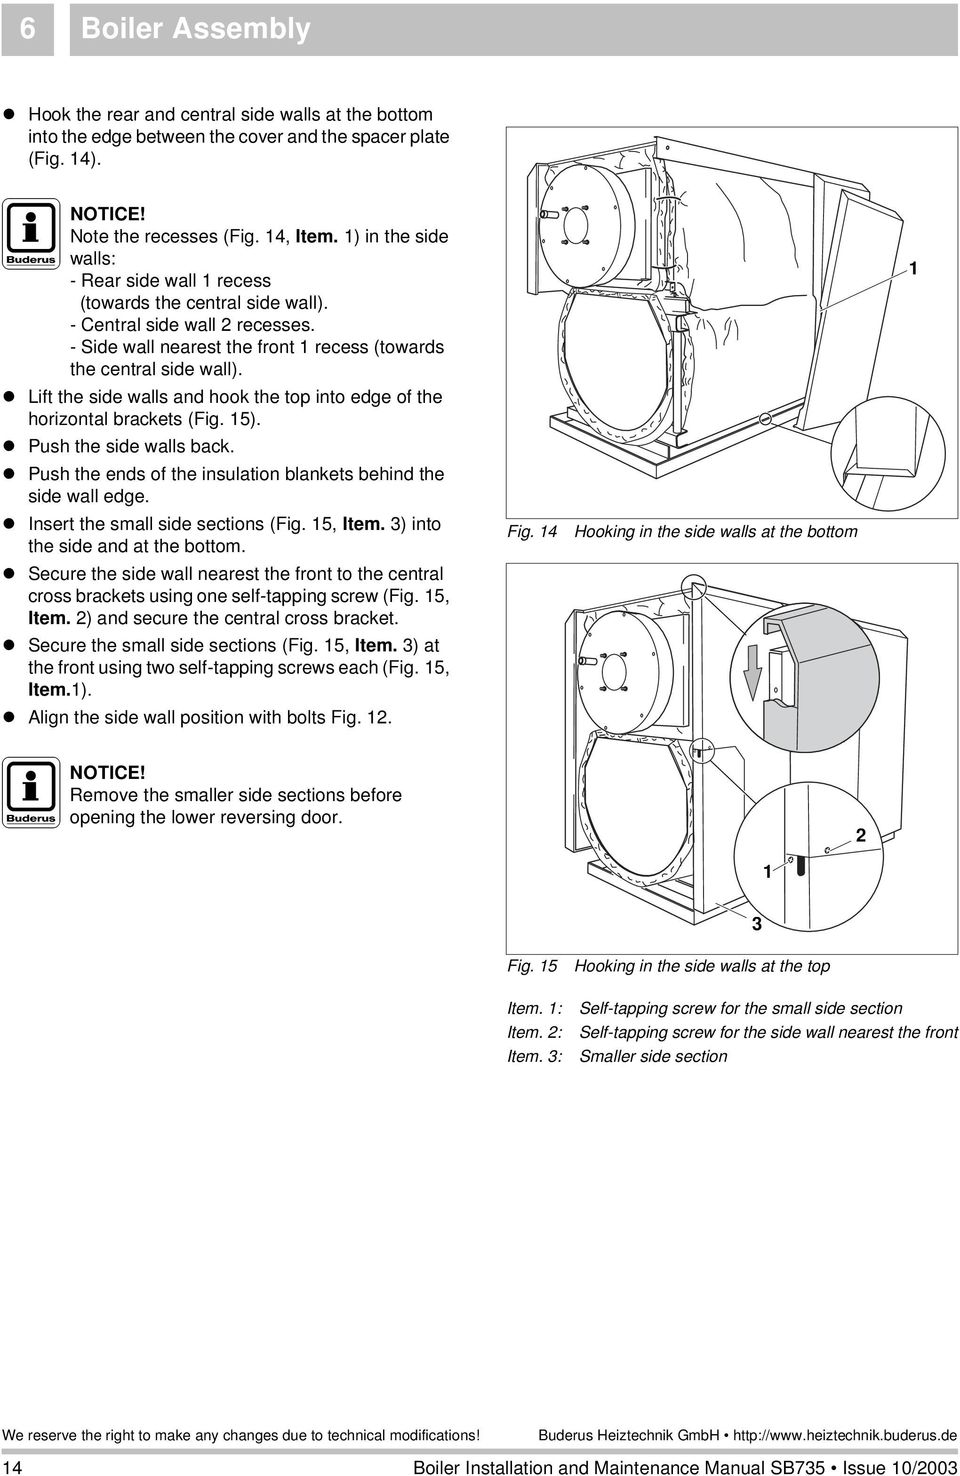 Boiler Installation And Maintenance Manual Pdf Buderus Wiring Diagram Lift The Side Walls Hook Top Into Edge Of Horizontal Brackets Fig